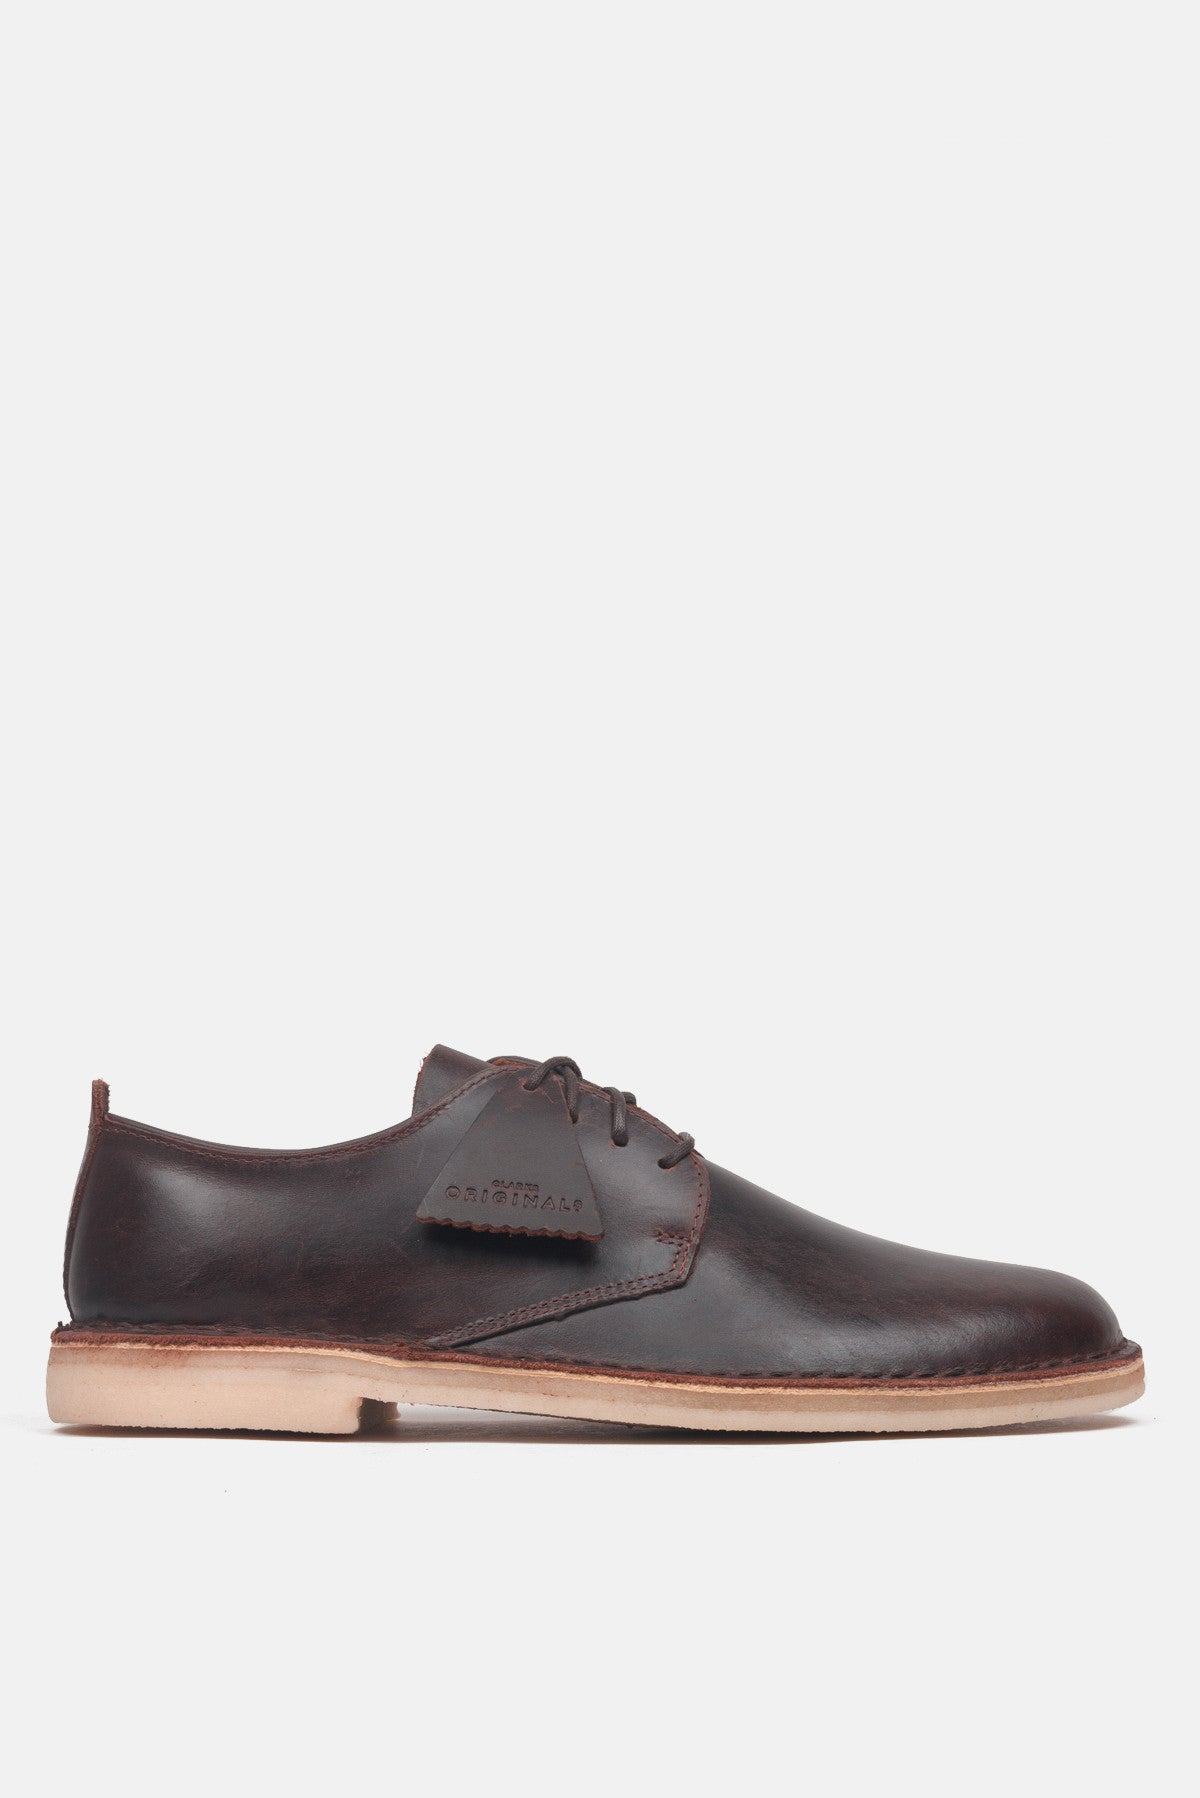 e0cf48613 Clarks Originals Desert London Shoes available from Priory